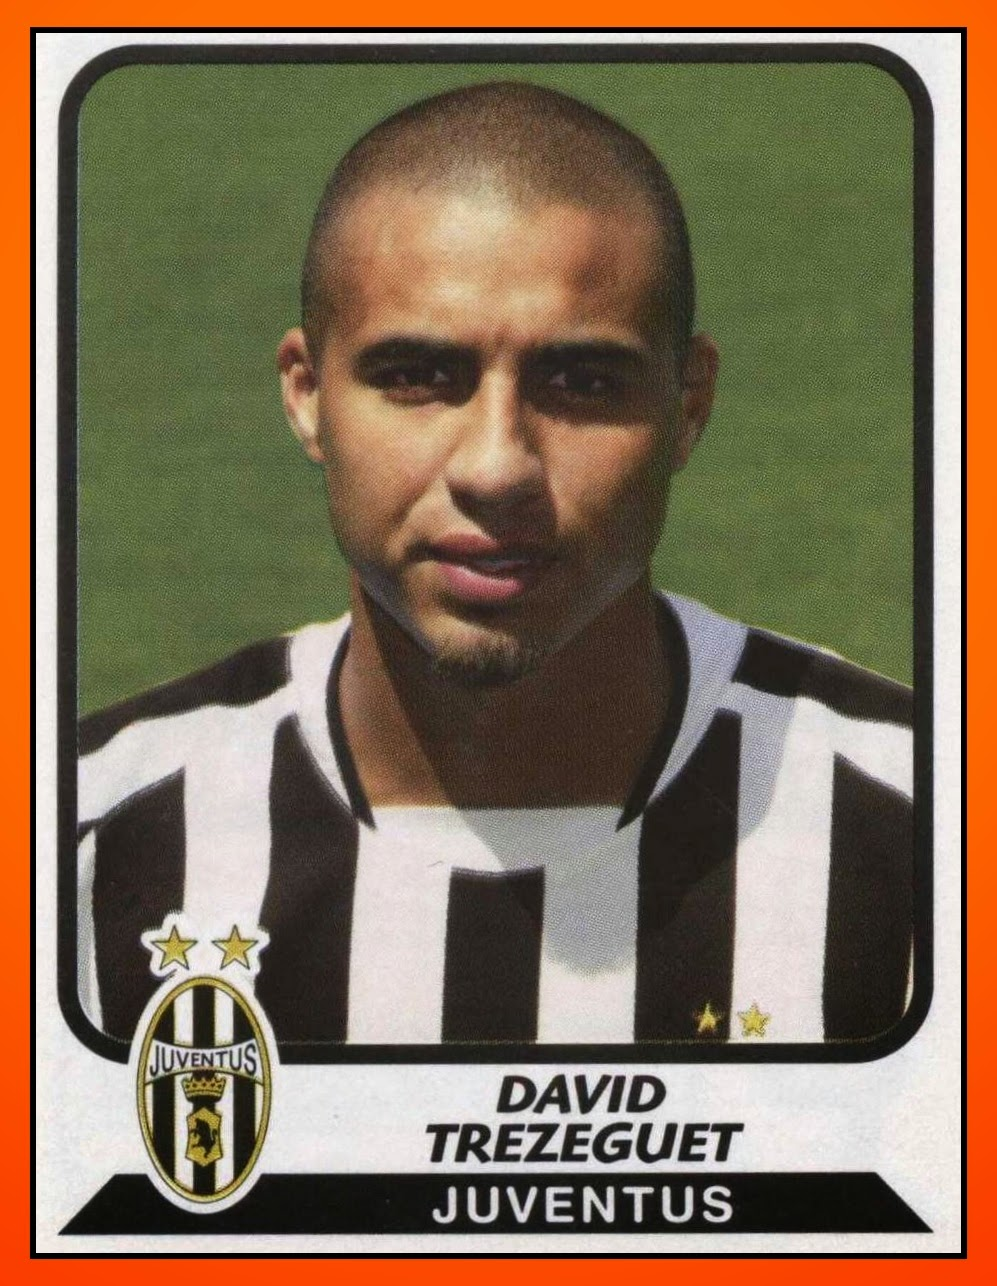 david trezeguet juventus - photo #32